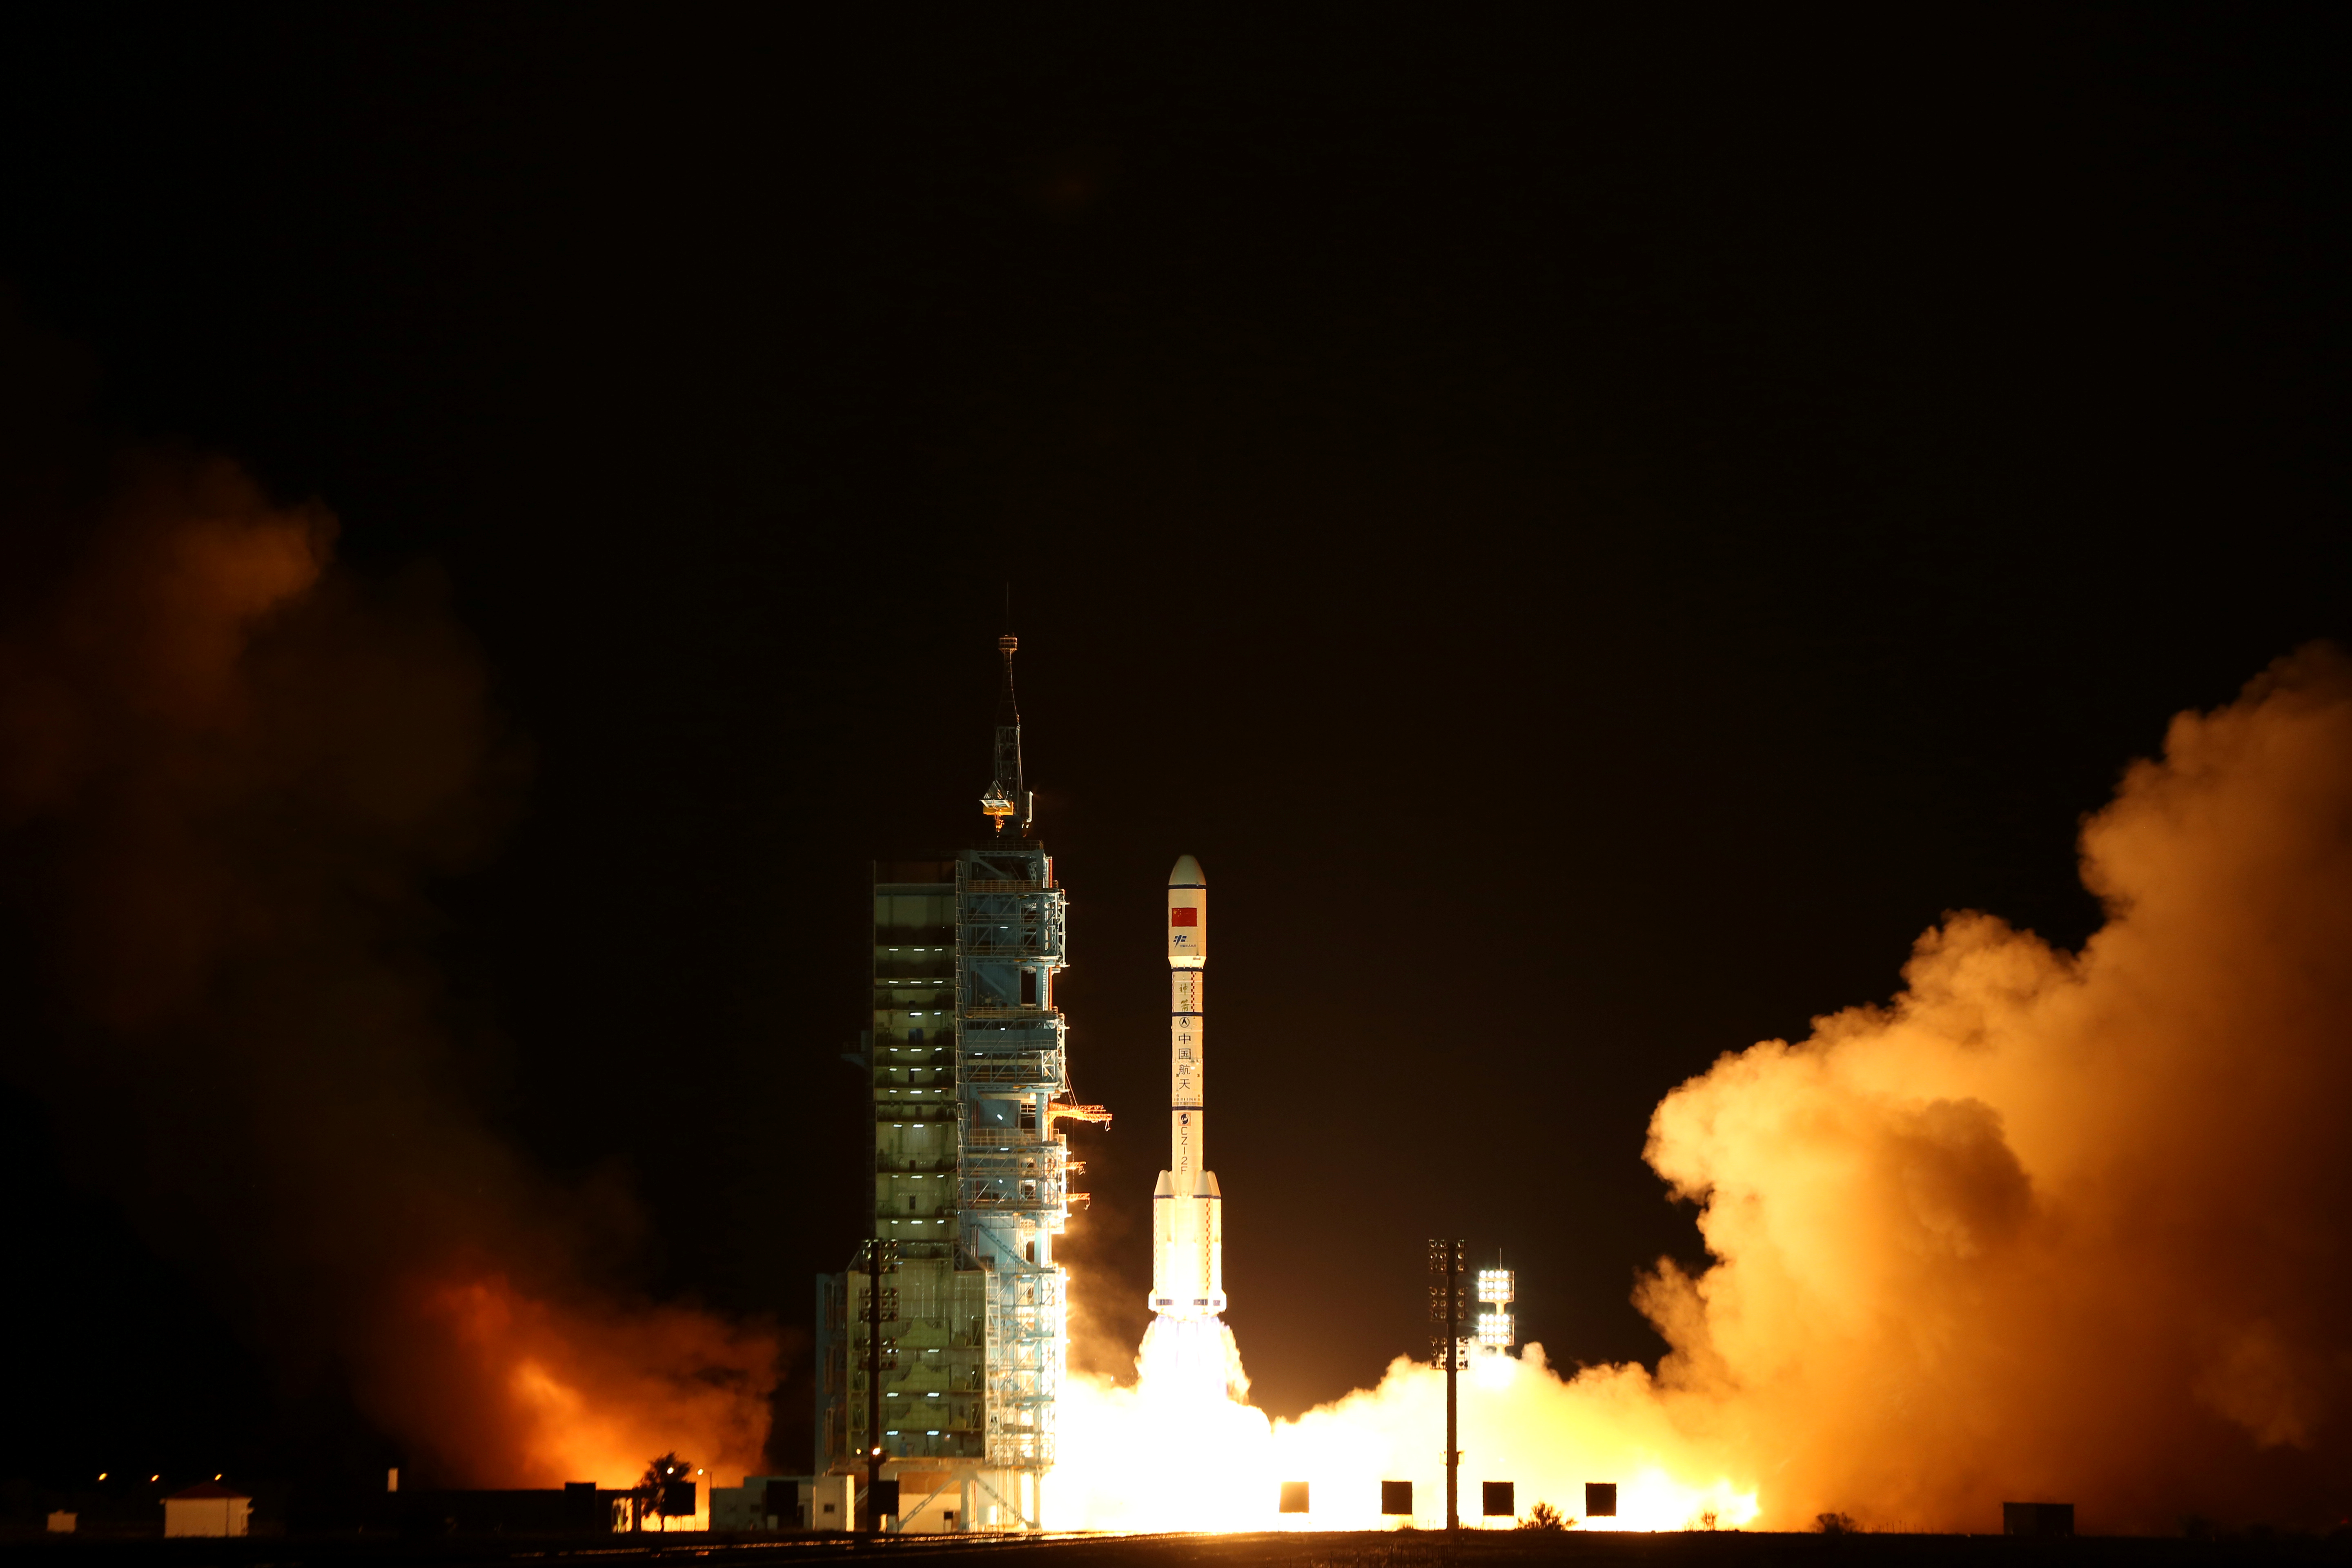 Tiangong-2, China's second space laboratory lifts off from the launch pad in Jiuquan, Gansu province, China, September 15, 2016. Picture taken September 15, 2016. China Daily/ via REUTERS ATTENTION EDITORS - THIS PICTURE WAS PROVIDED BY A THIRD PARTY. EDITORIAL USE ONLY. CHINA OUT. NO COMMERCIAL OR EDITORIAL SALES IN CHINA.     TPX IMAGES OF THE DAY      - S1BEUBOEQWAA